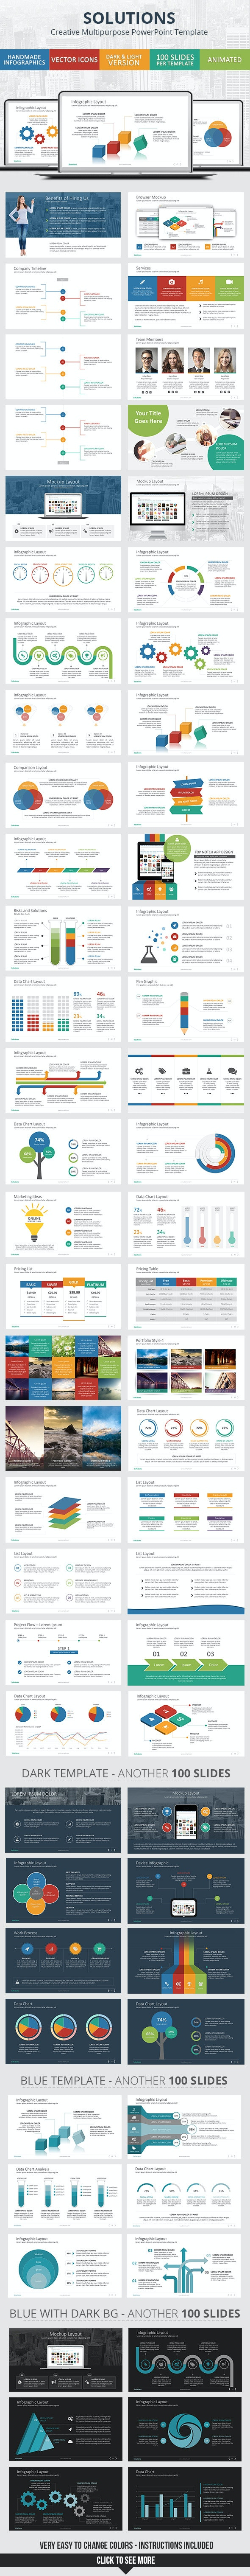 Solutions - PowerPoint Presentation Template - Business PowerPoint Templates